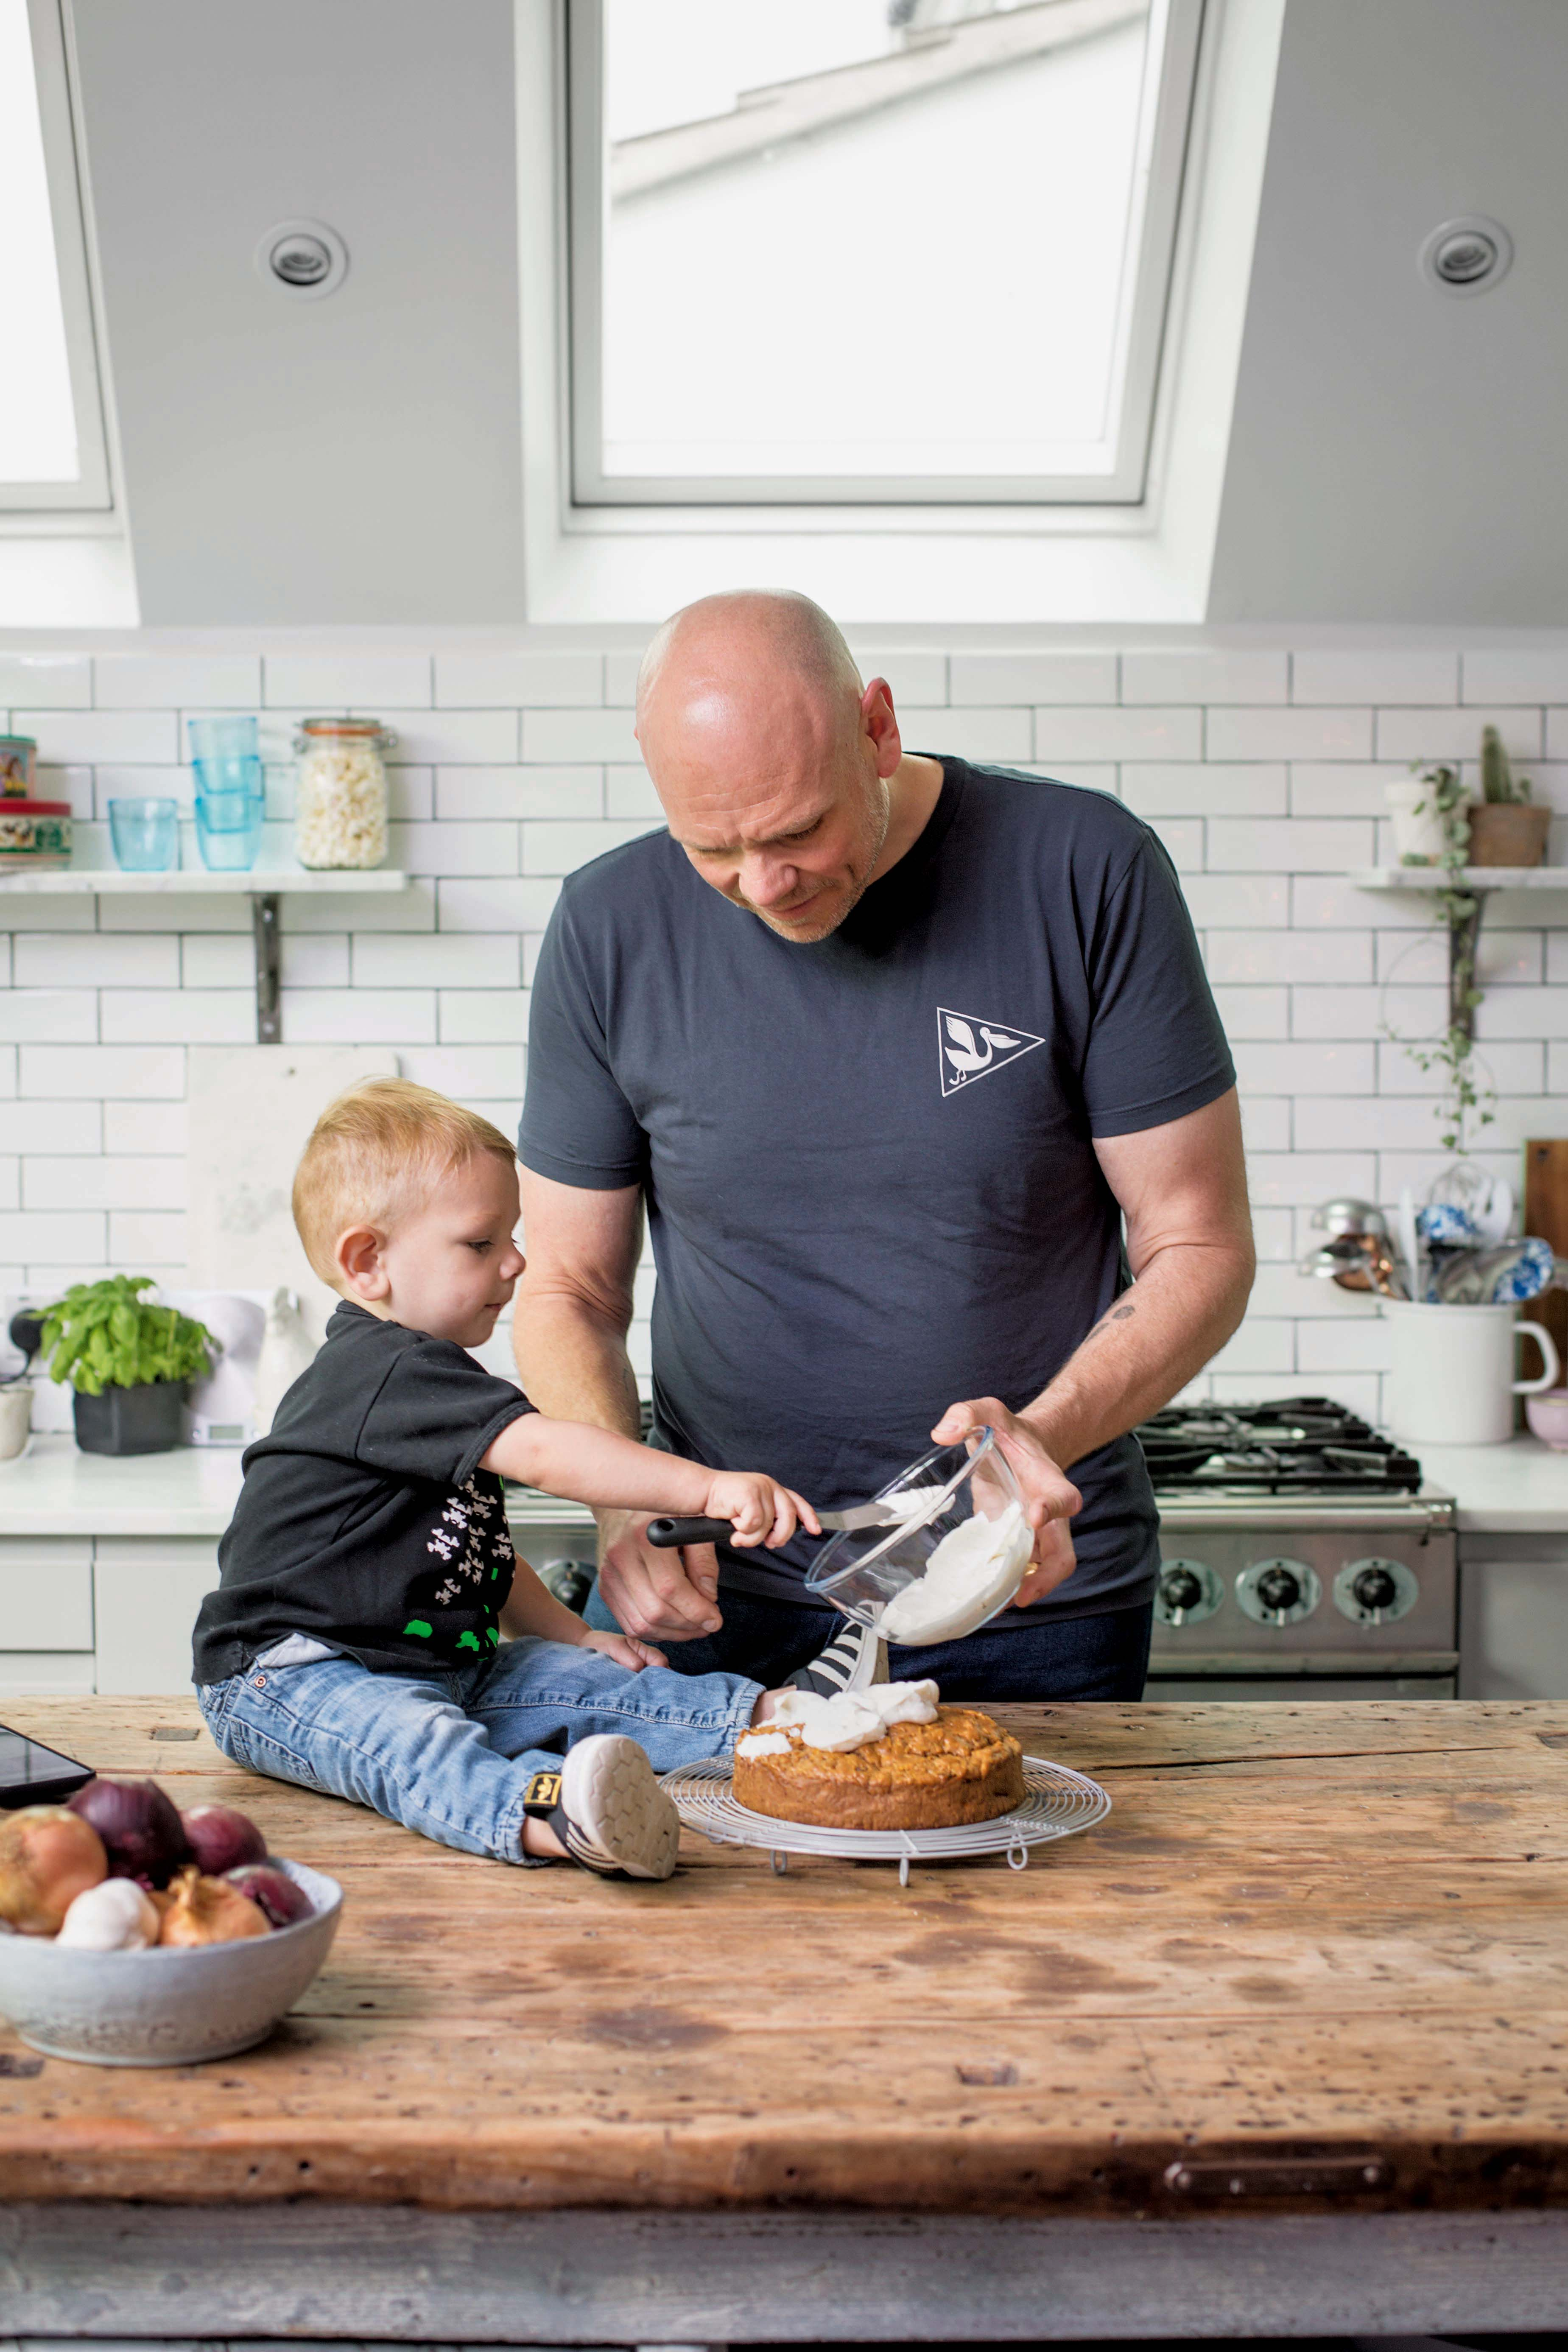 Tom and his two-year-old son making carrot cake with cream cheese frosting (© Cristian Barnett/PA)